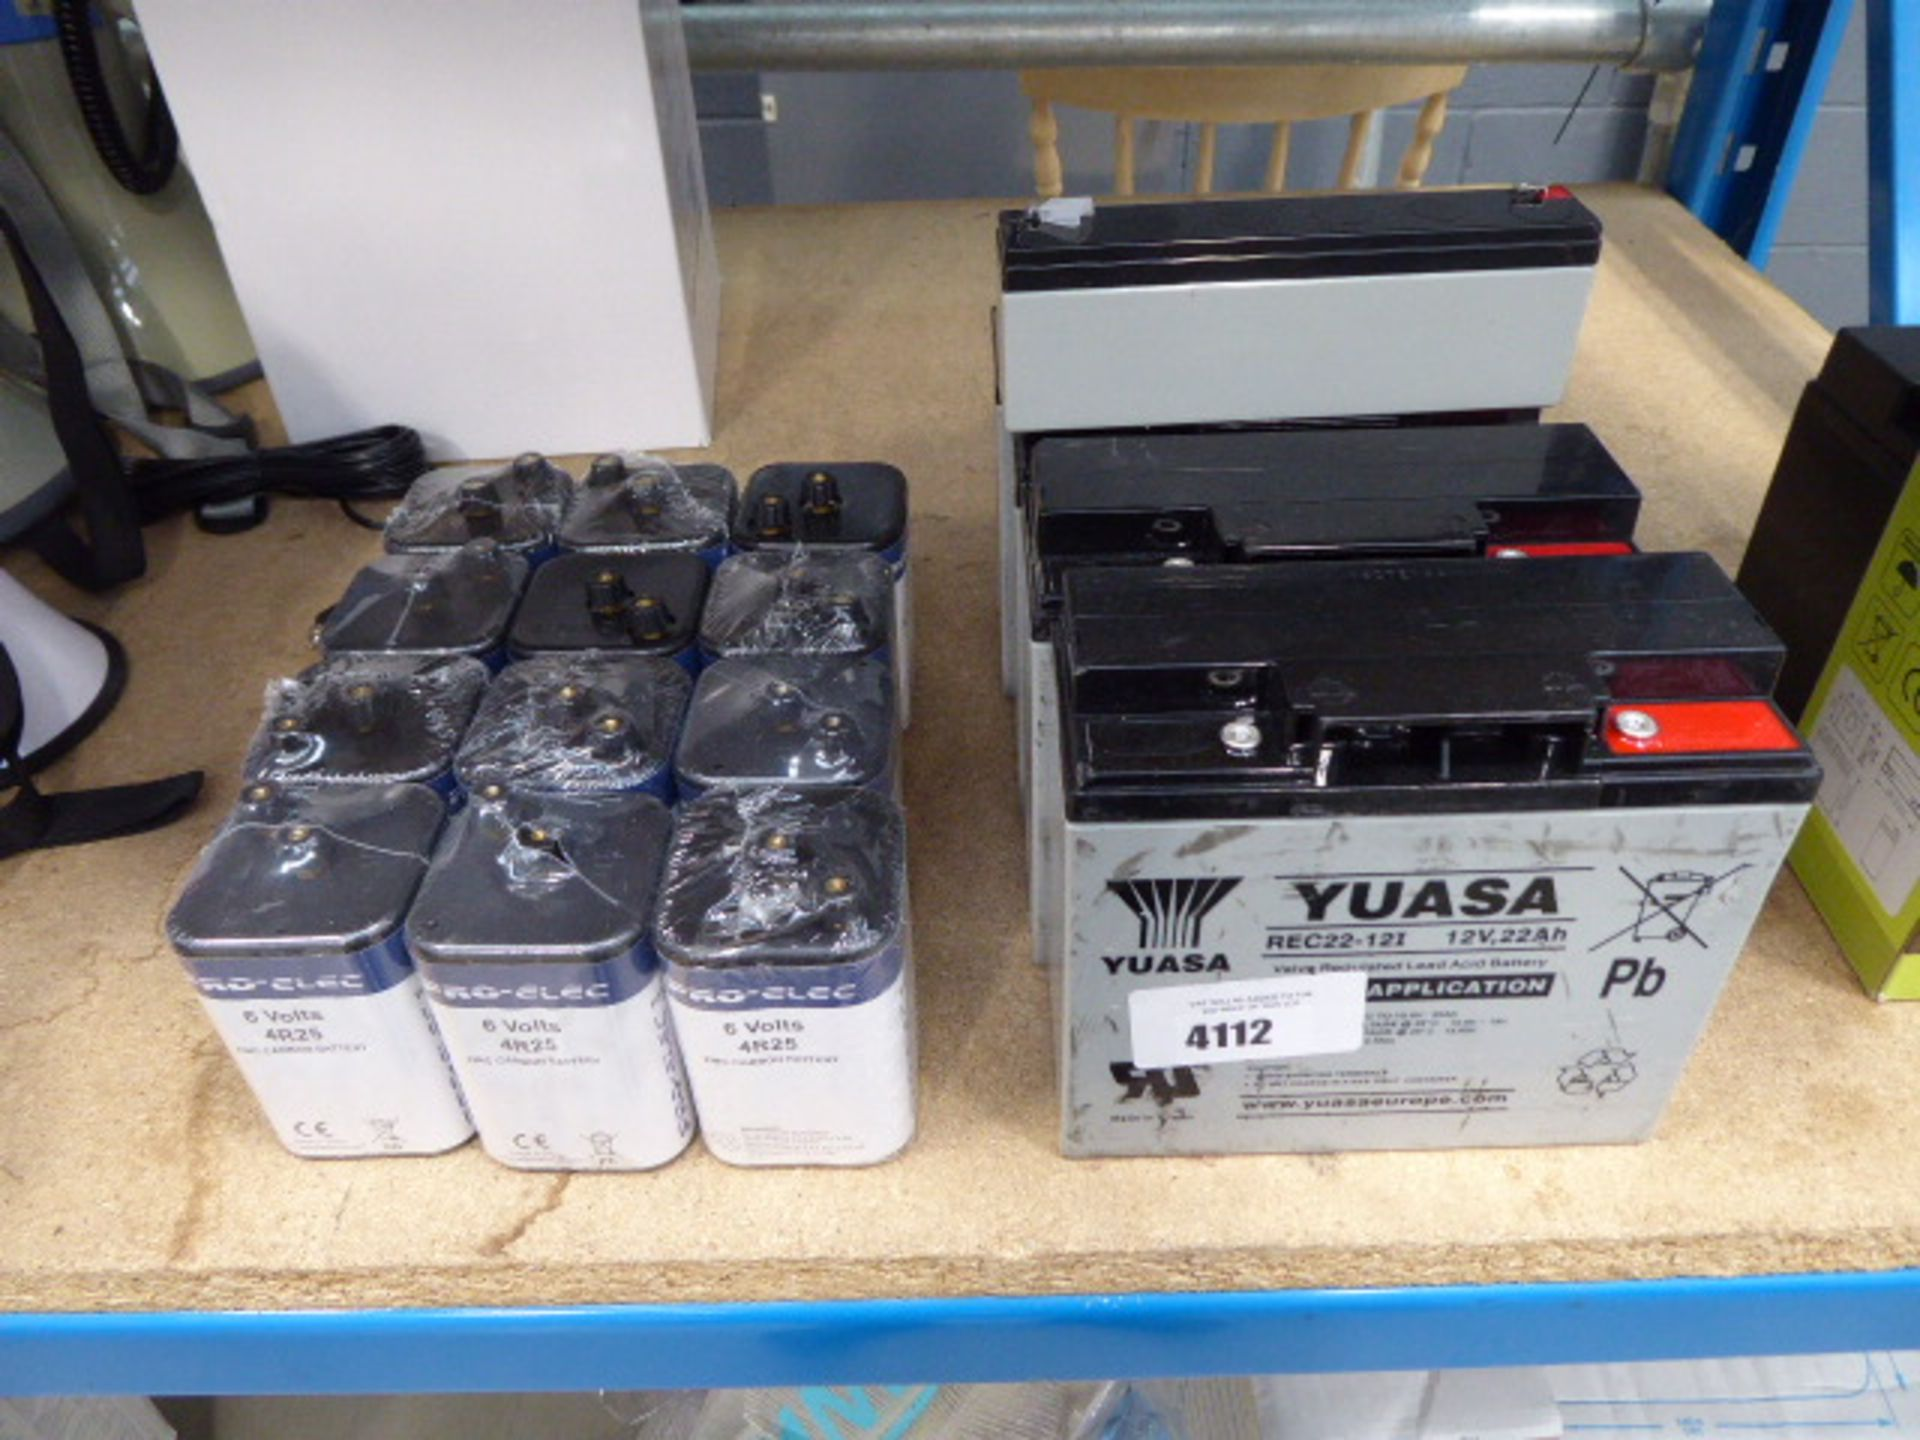 4 12 volt batteries and 12 6 volt batteries